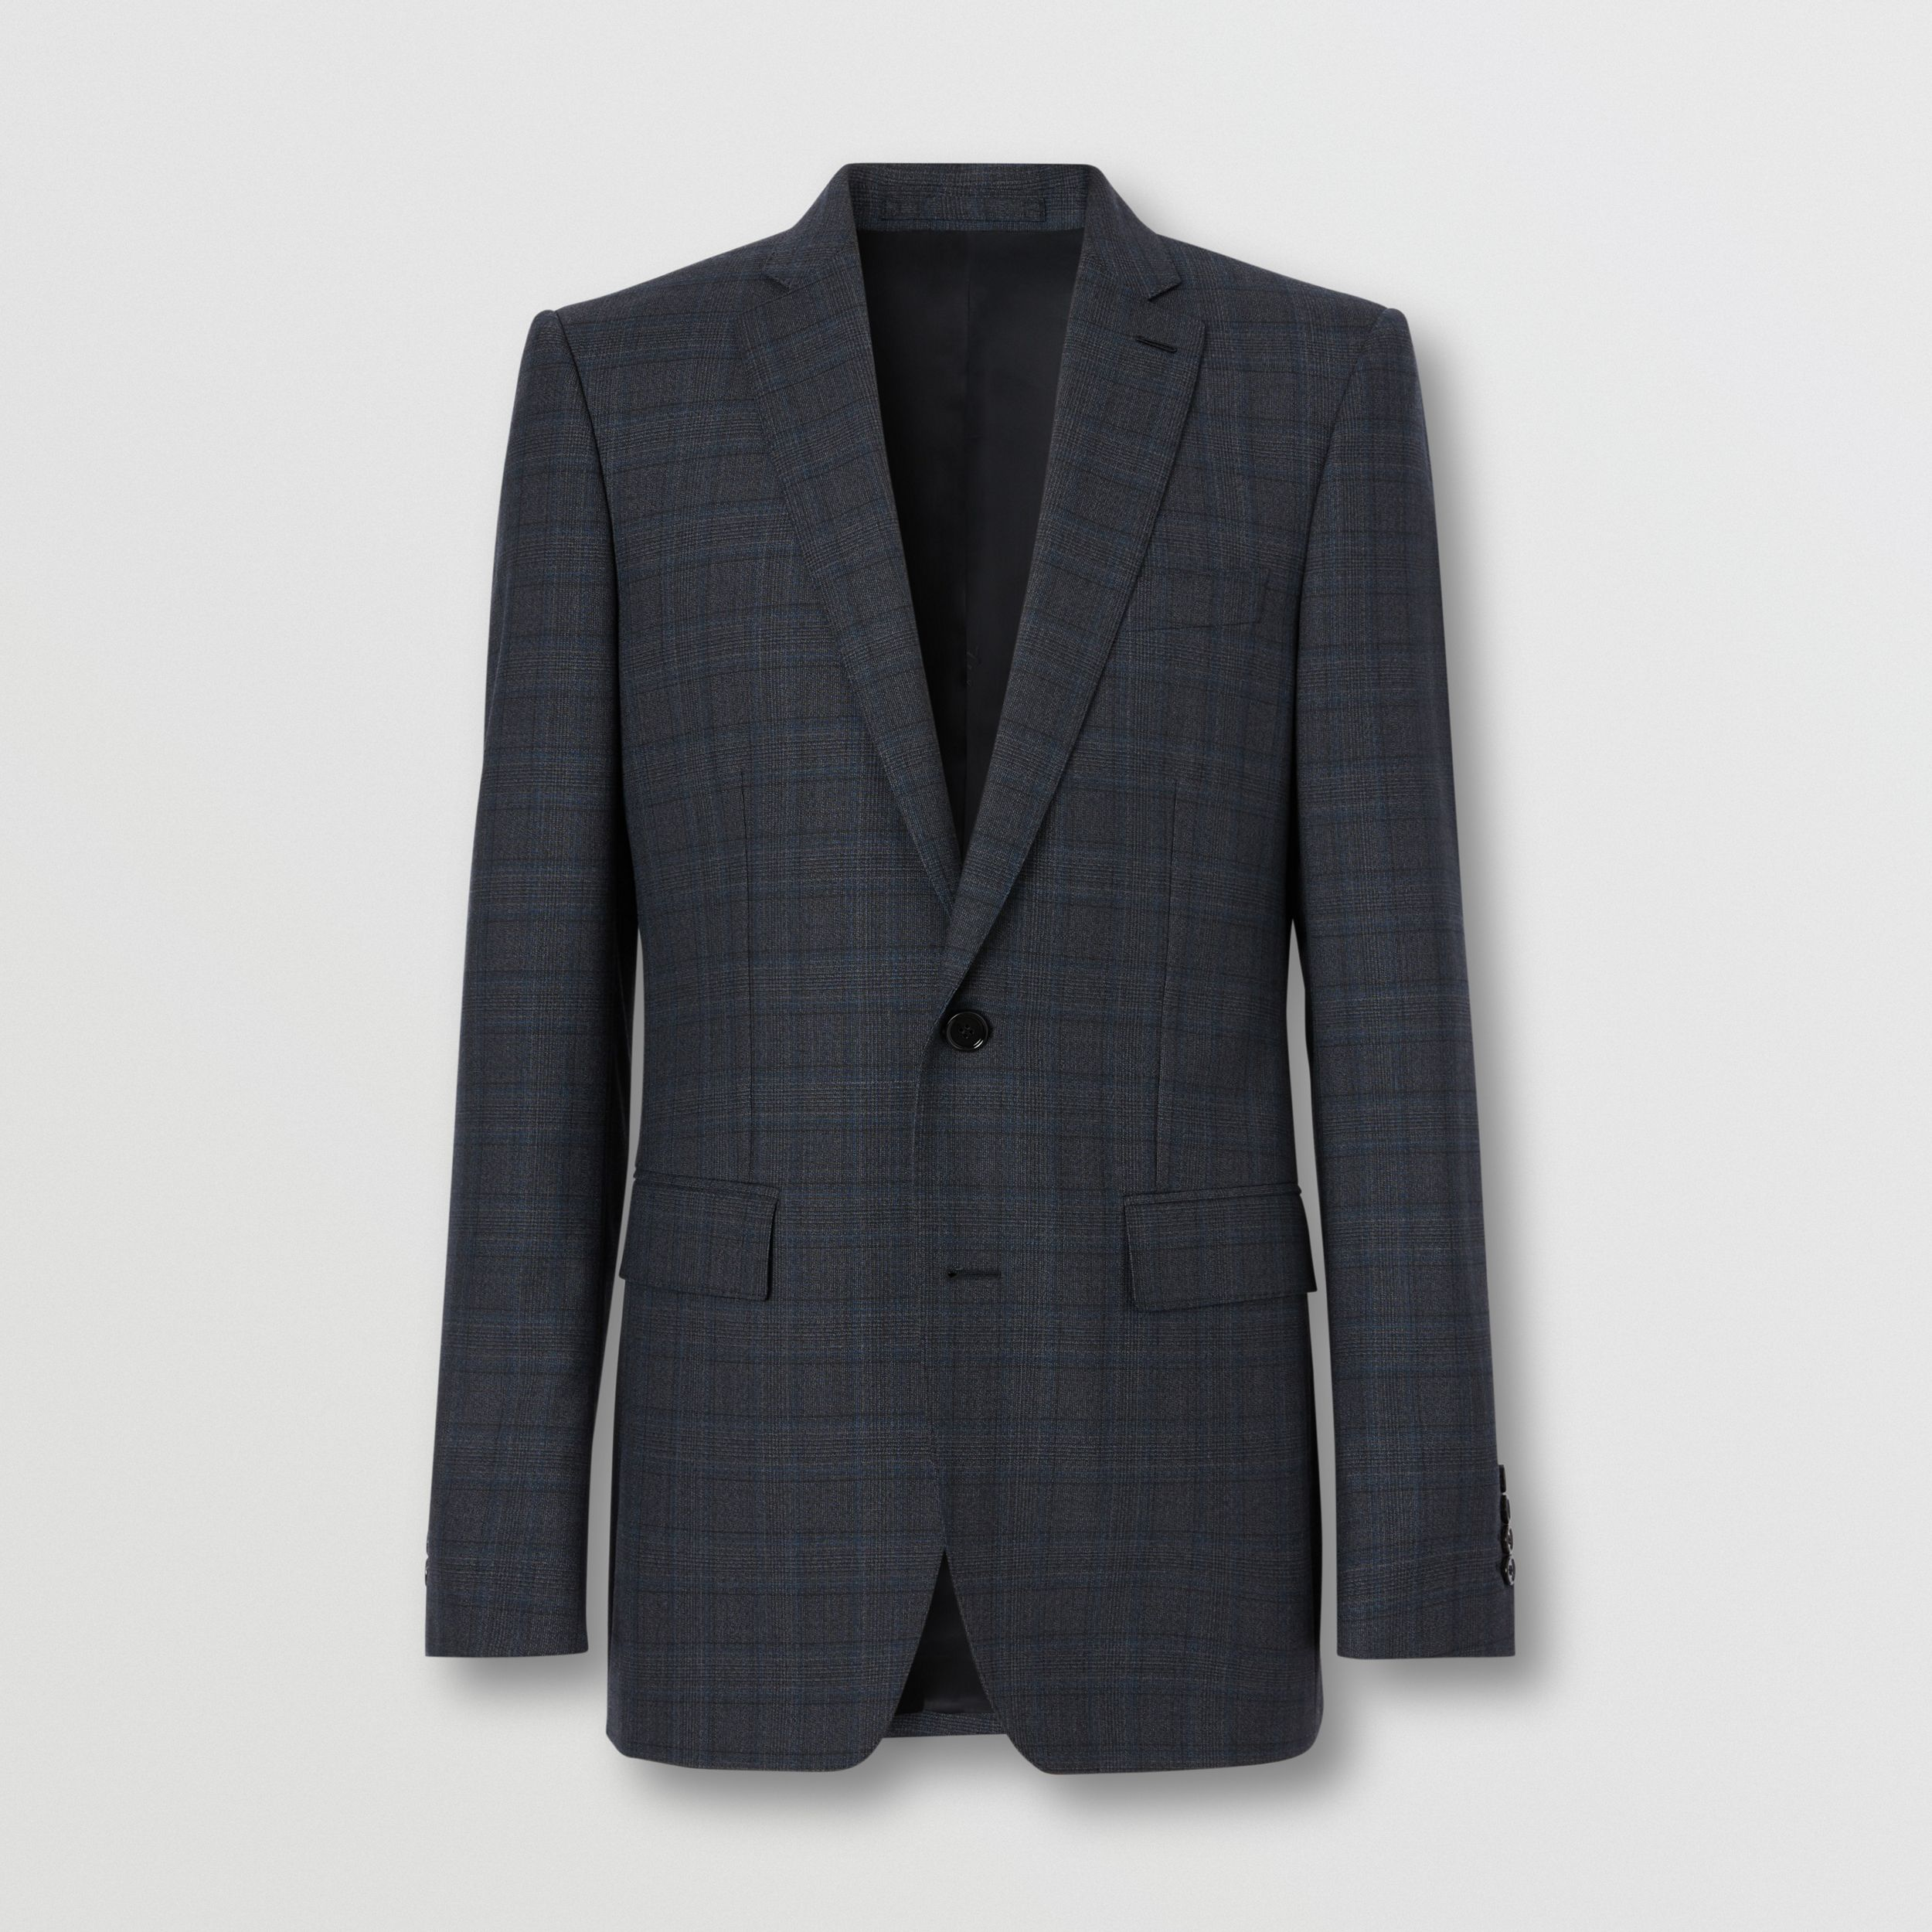 English Fit Check Wool Suit in Steel Blue - Men | Burberry - 4